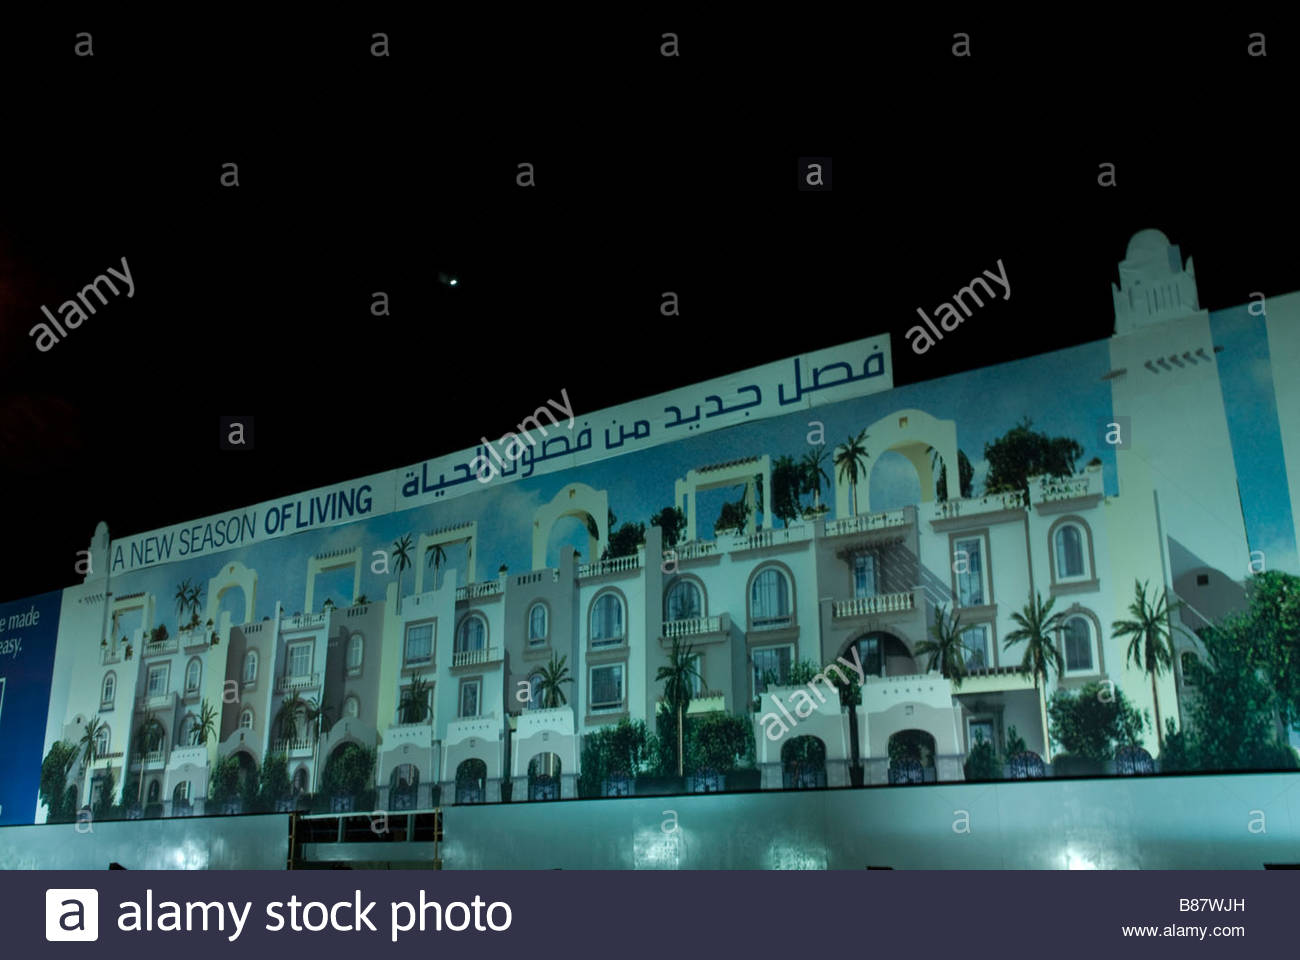 dubai,a gigantic poster of a real estate along shei zaied road - Stock Image